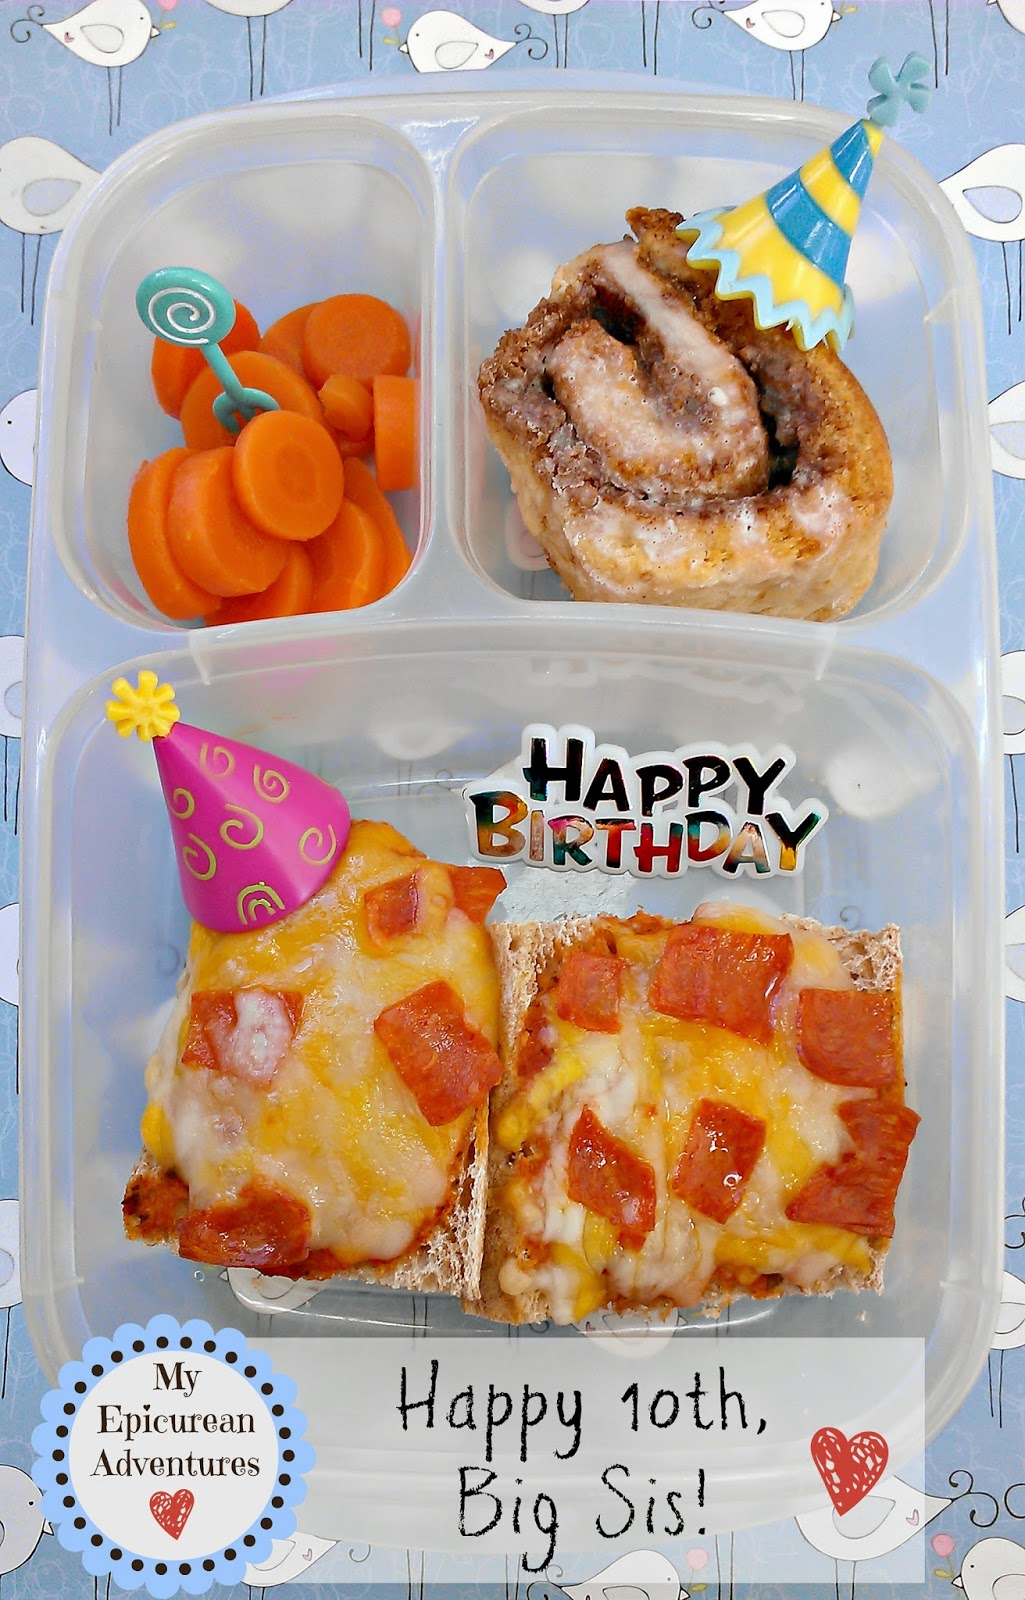 My Epicurean Adventures: Big Sis' 10th Birthday Lunch @Easylunchboxes